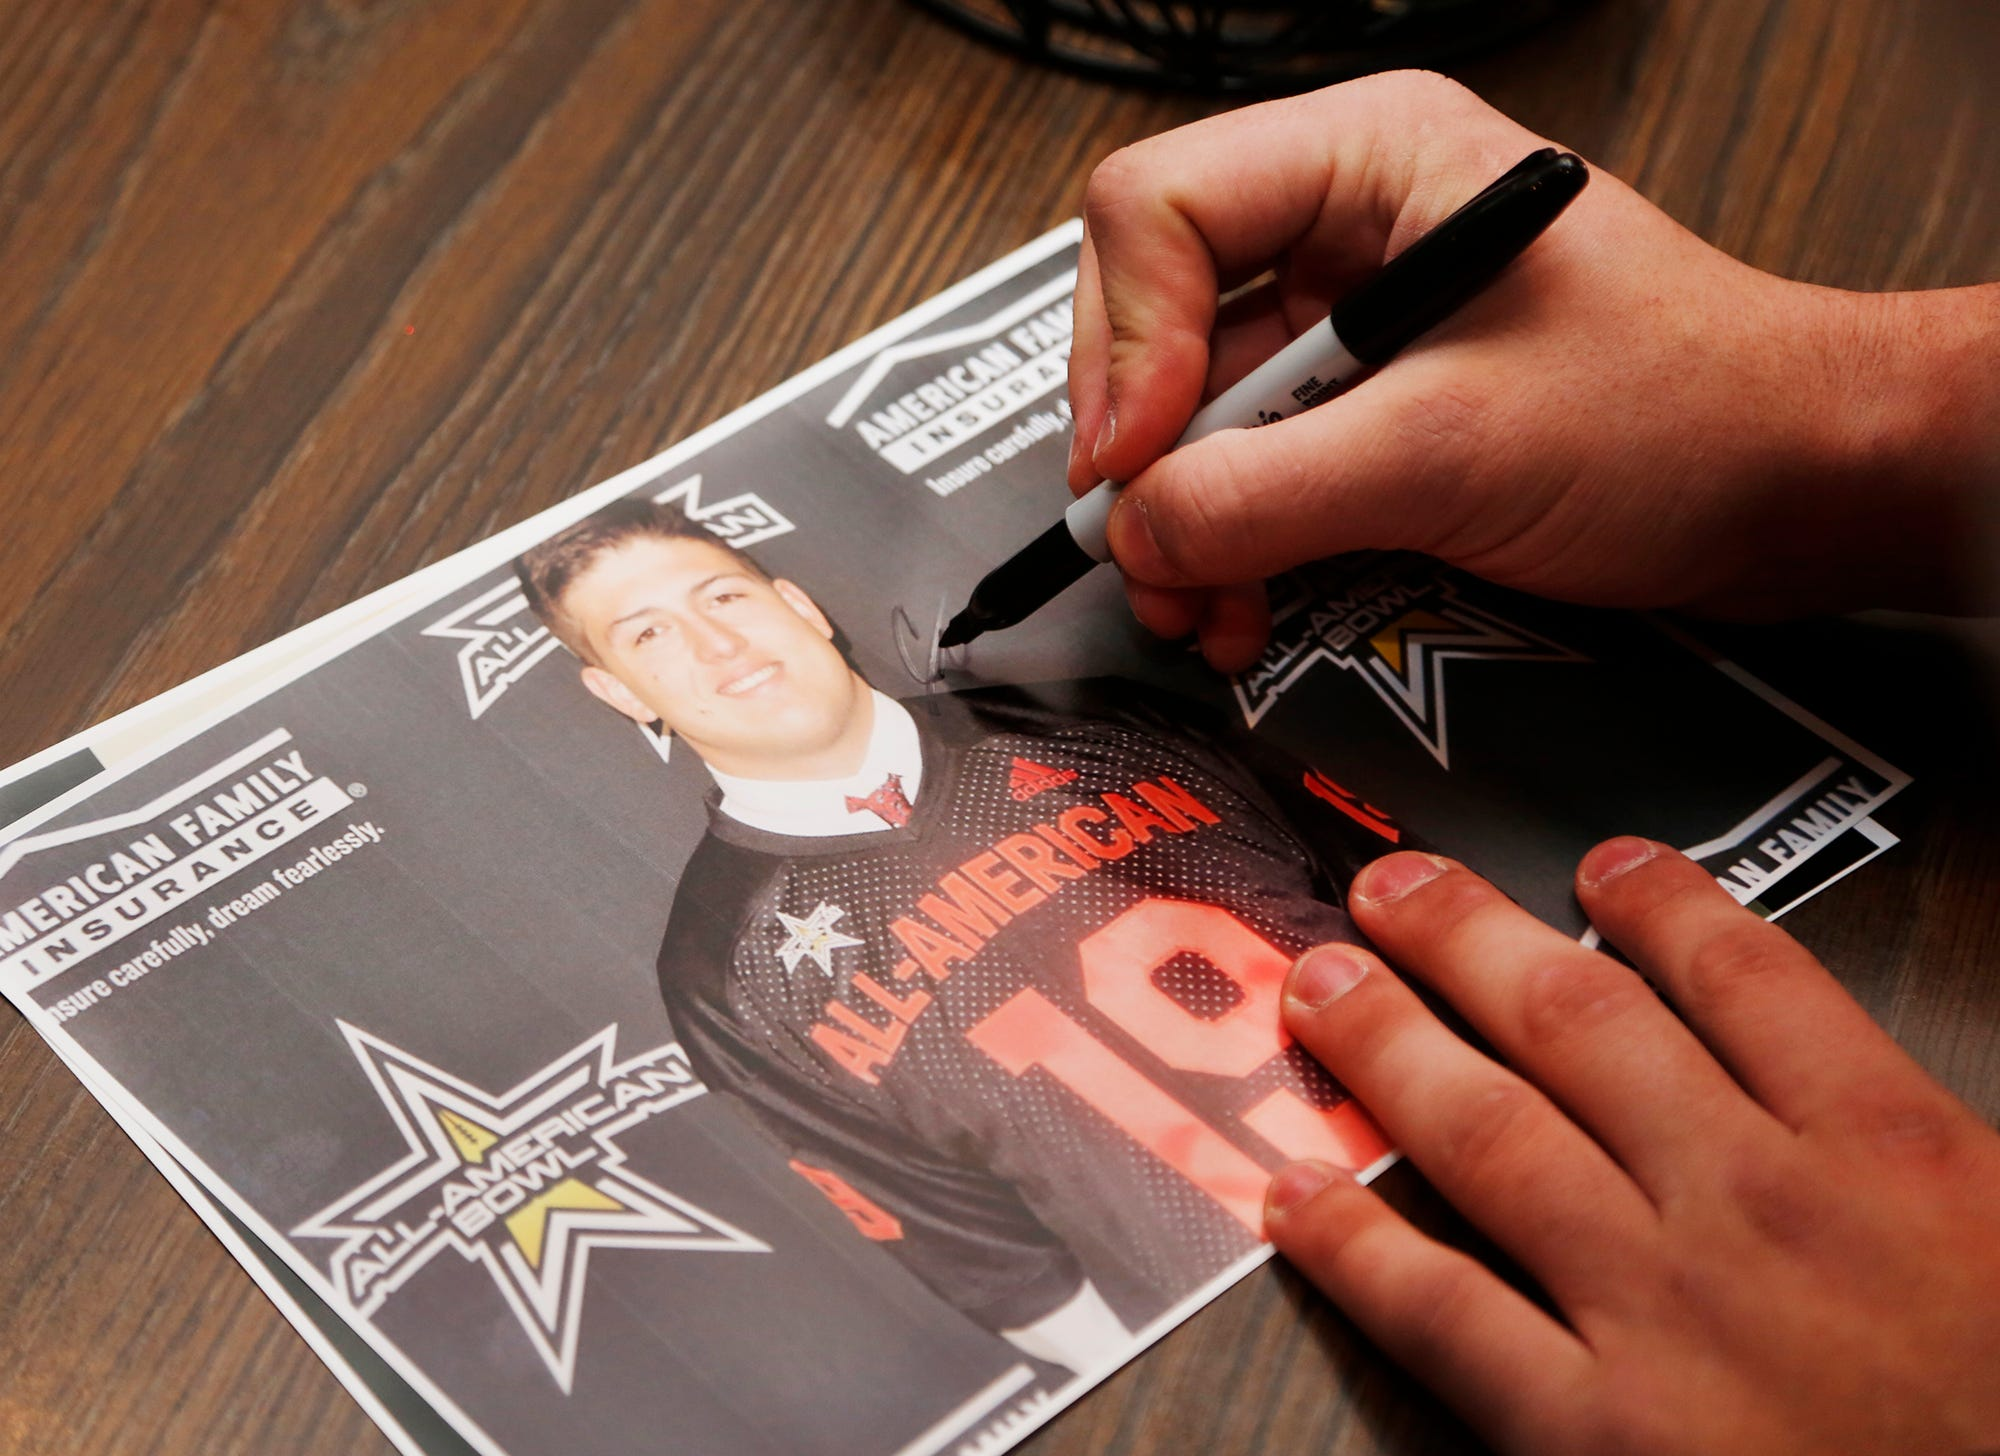 George Karlaftis signs his autograph for a fan prior to signing his personal copy of his national letter of intent to play football for Purdue Wednesday, December 19, 2018, at Bruno's in West Lafayette.